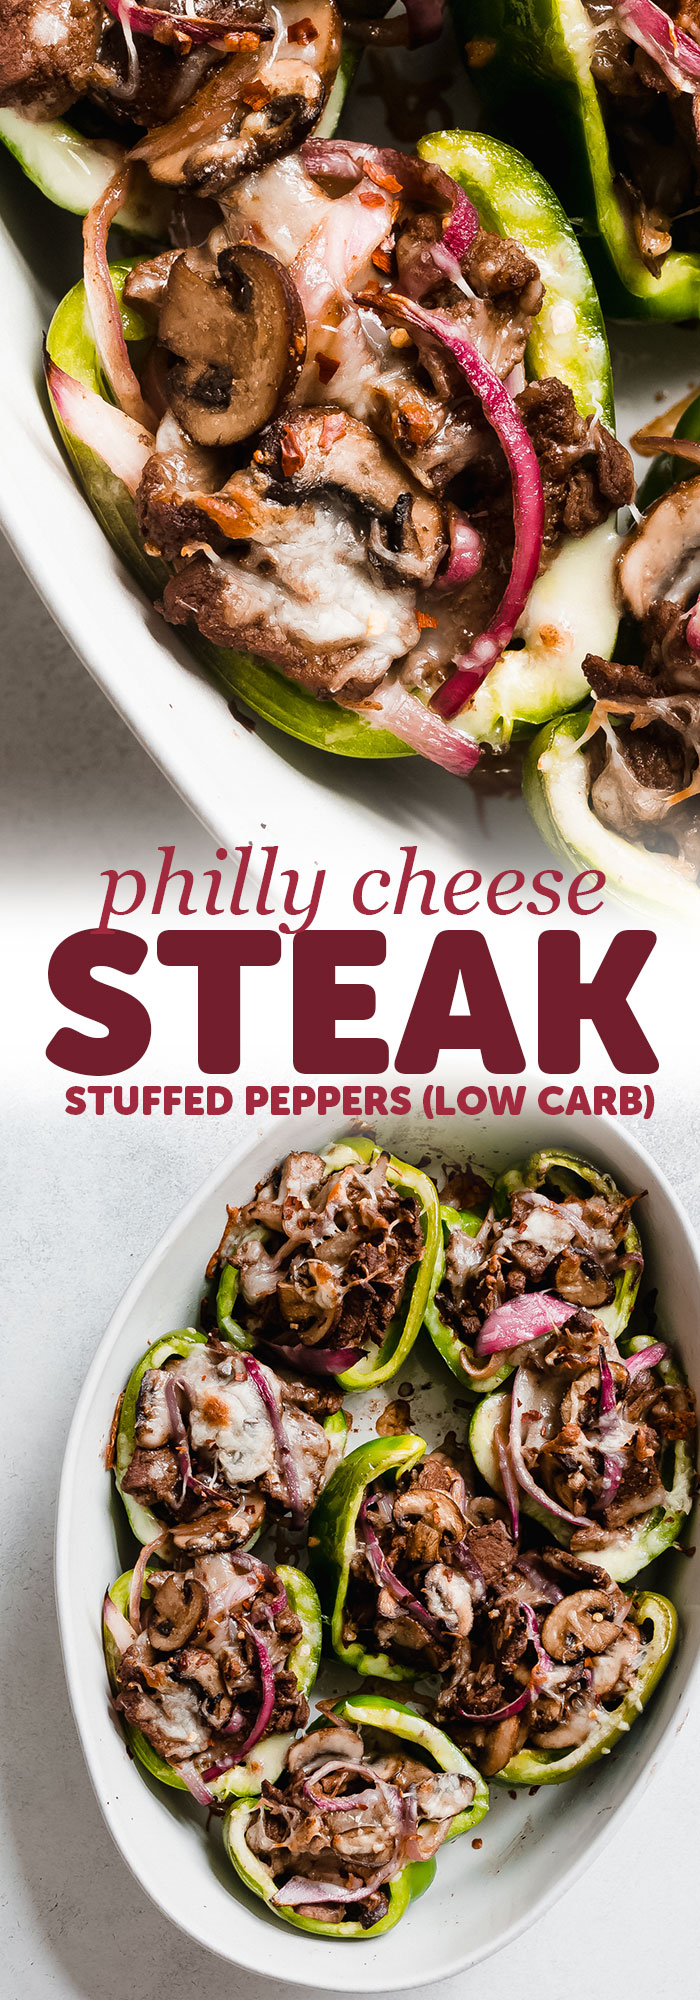 Philly Cheesesteak Stuffed Peppers - Learn how to make a low carb version of Philly Cheesesteak! These peppers are so colorful and filling even those who don't care about low carb eating will love them! #lowcarb #lowcarbrecipes #phillycheesesteak #phillycheesesteakstuffedpeppers #stuffedpeppers #lowcarbcheesesteak | Littlespicejar.com